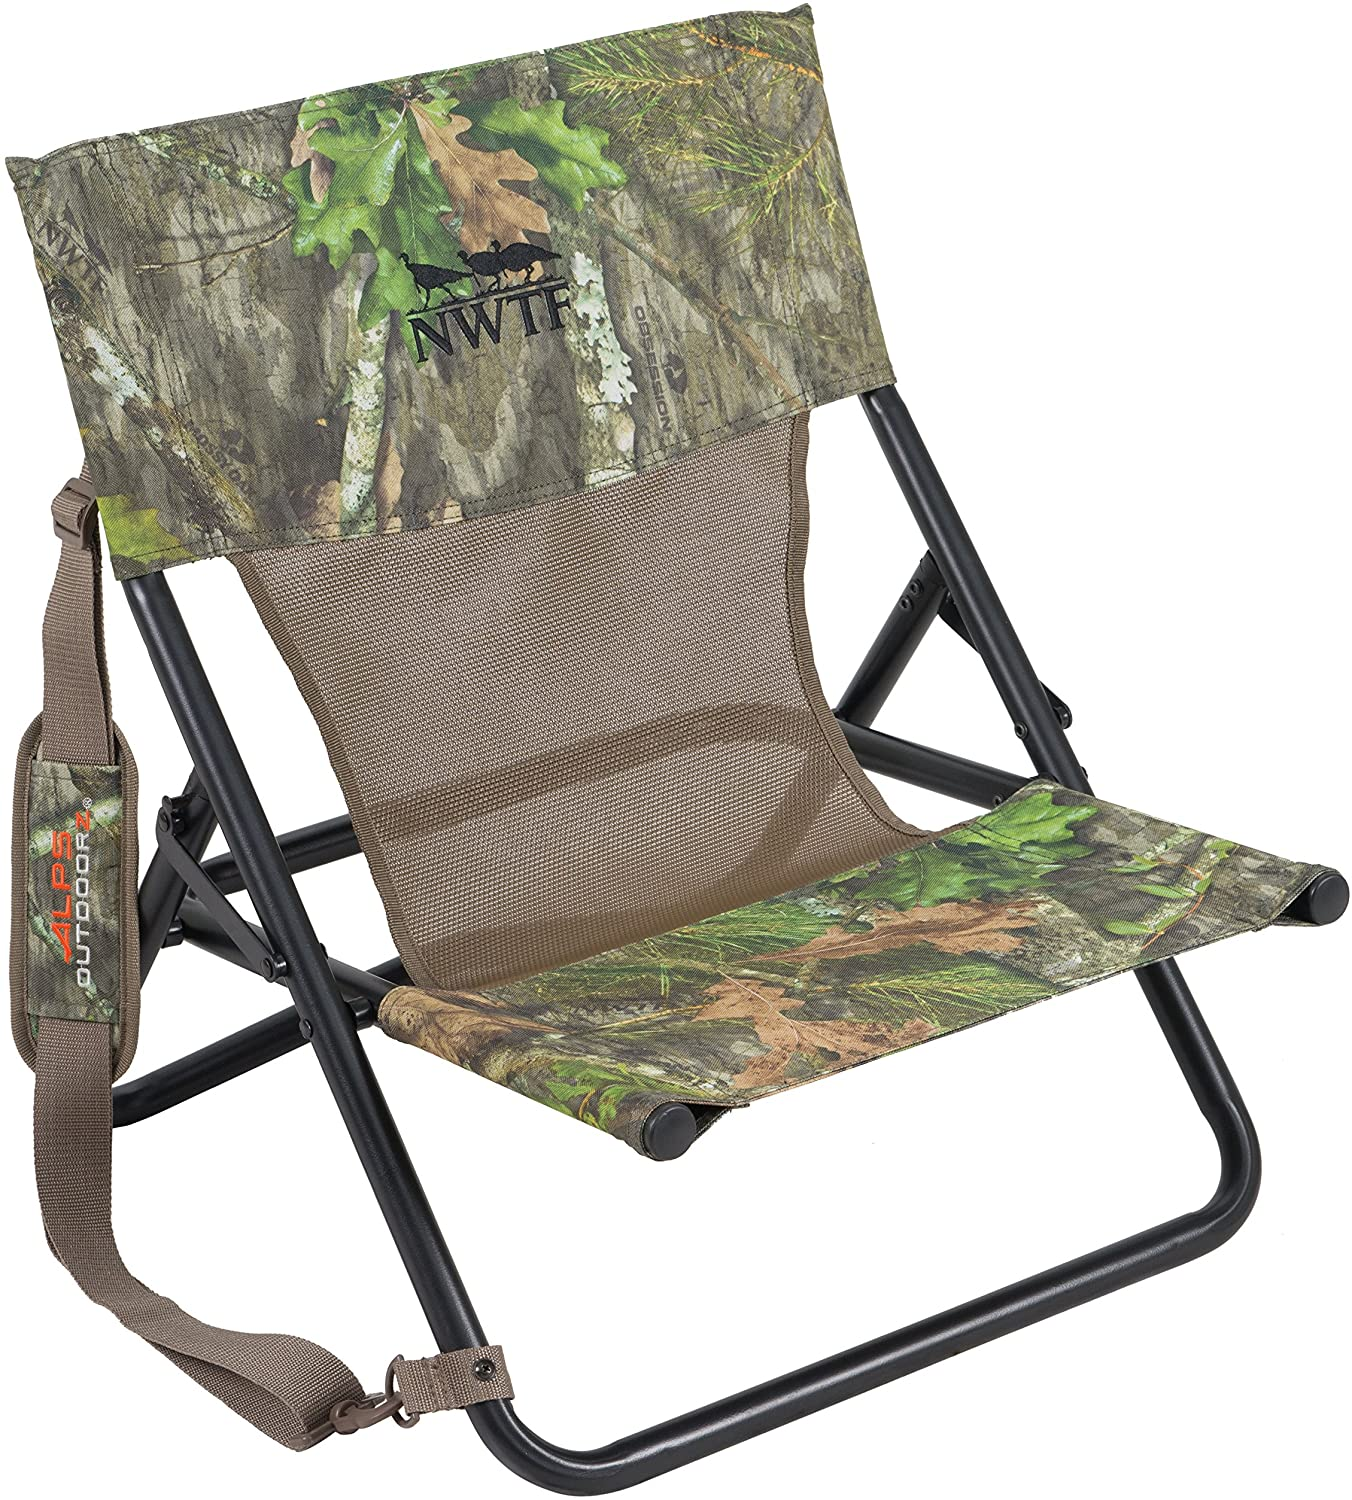 Best Turkey Hunting Chair 2021 Review Top Seat Stools For Turkeys